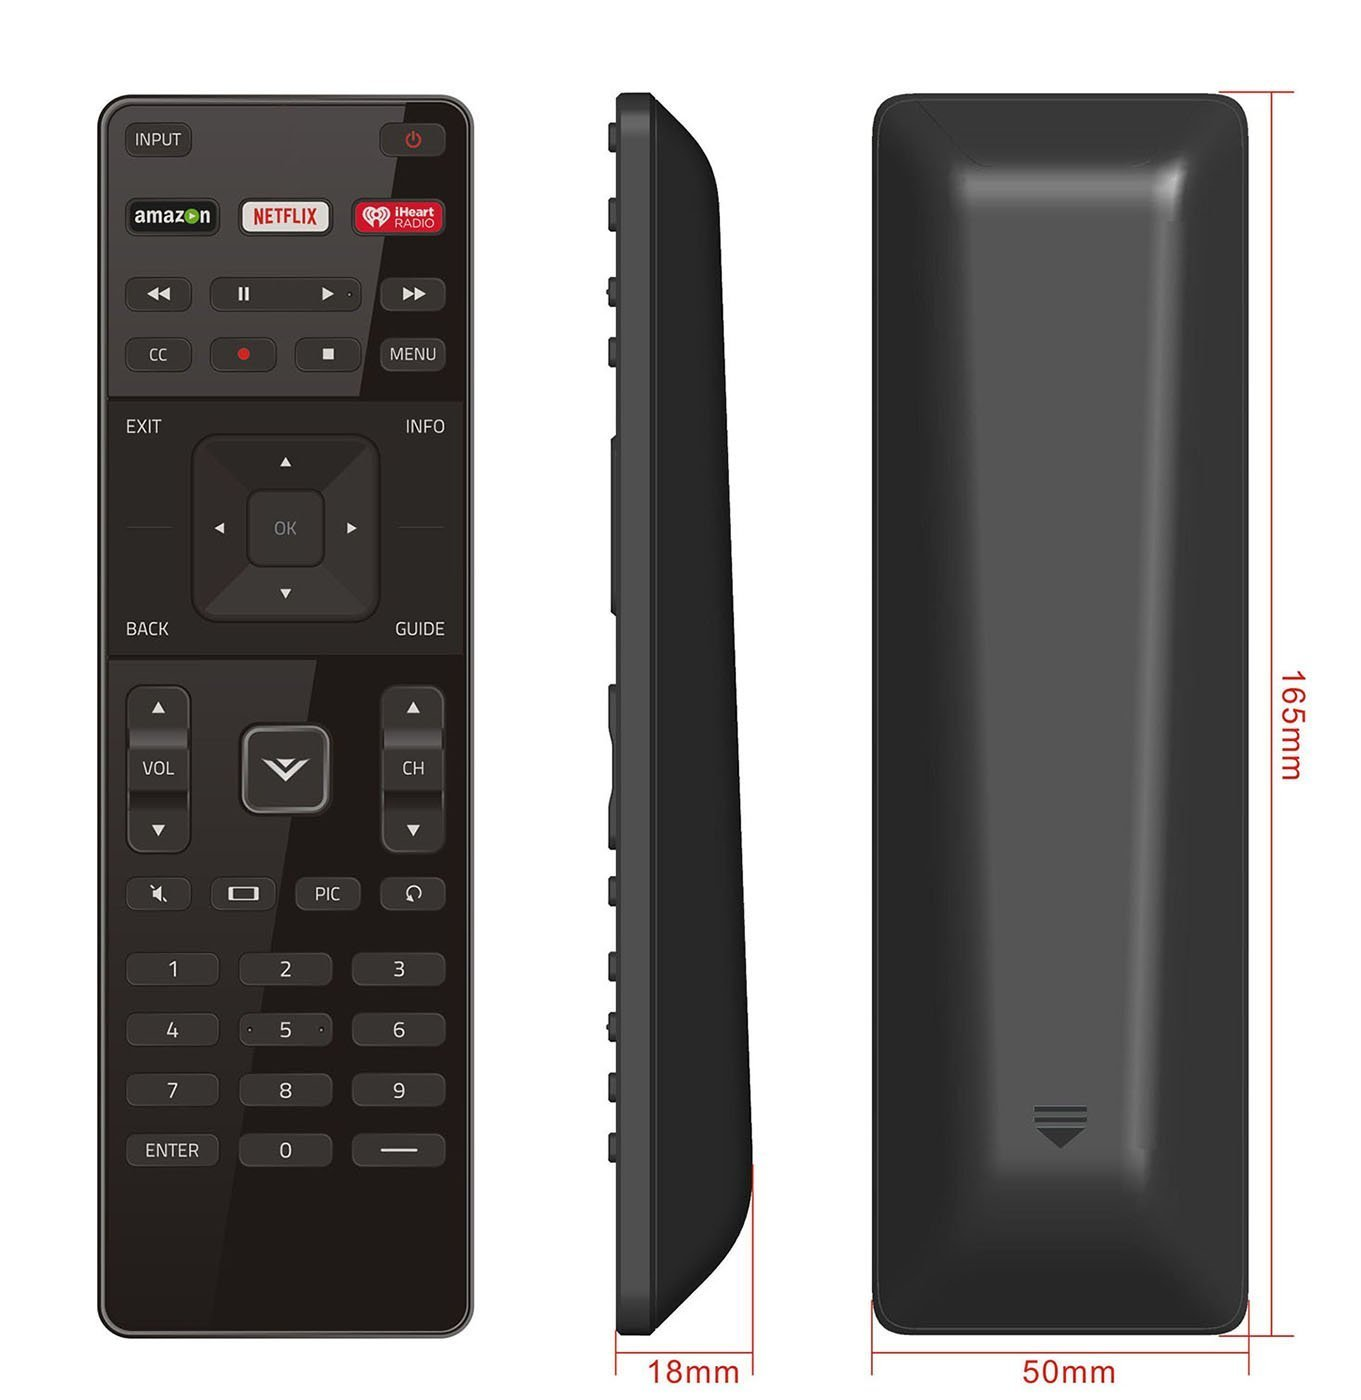 Smartby New XRT122 TV Remote for Vizio LCD LED TV D39H-D0 D39HD0 D50U-D1 D50UD1 D55U-D1 D55UD1 D58U-D3 D58UD3 D65U-D2 D65UD2 E32-C1 E32C1 E32H-C1 E32HC1 E40-C2 E40C2 E40X-C2